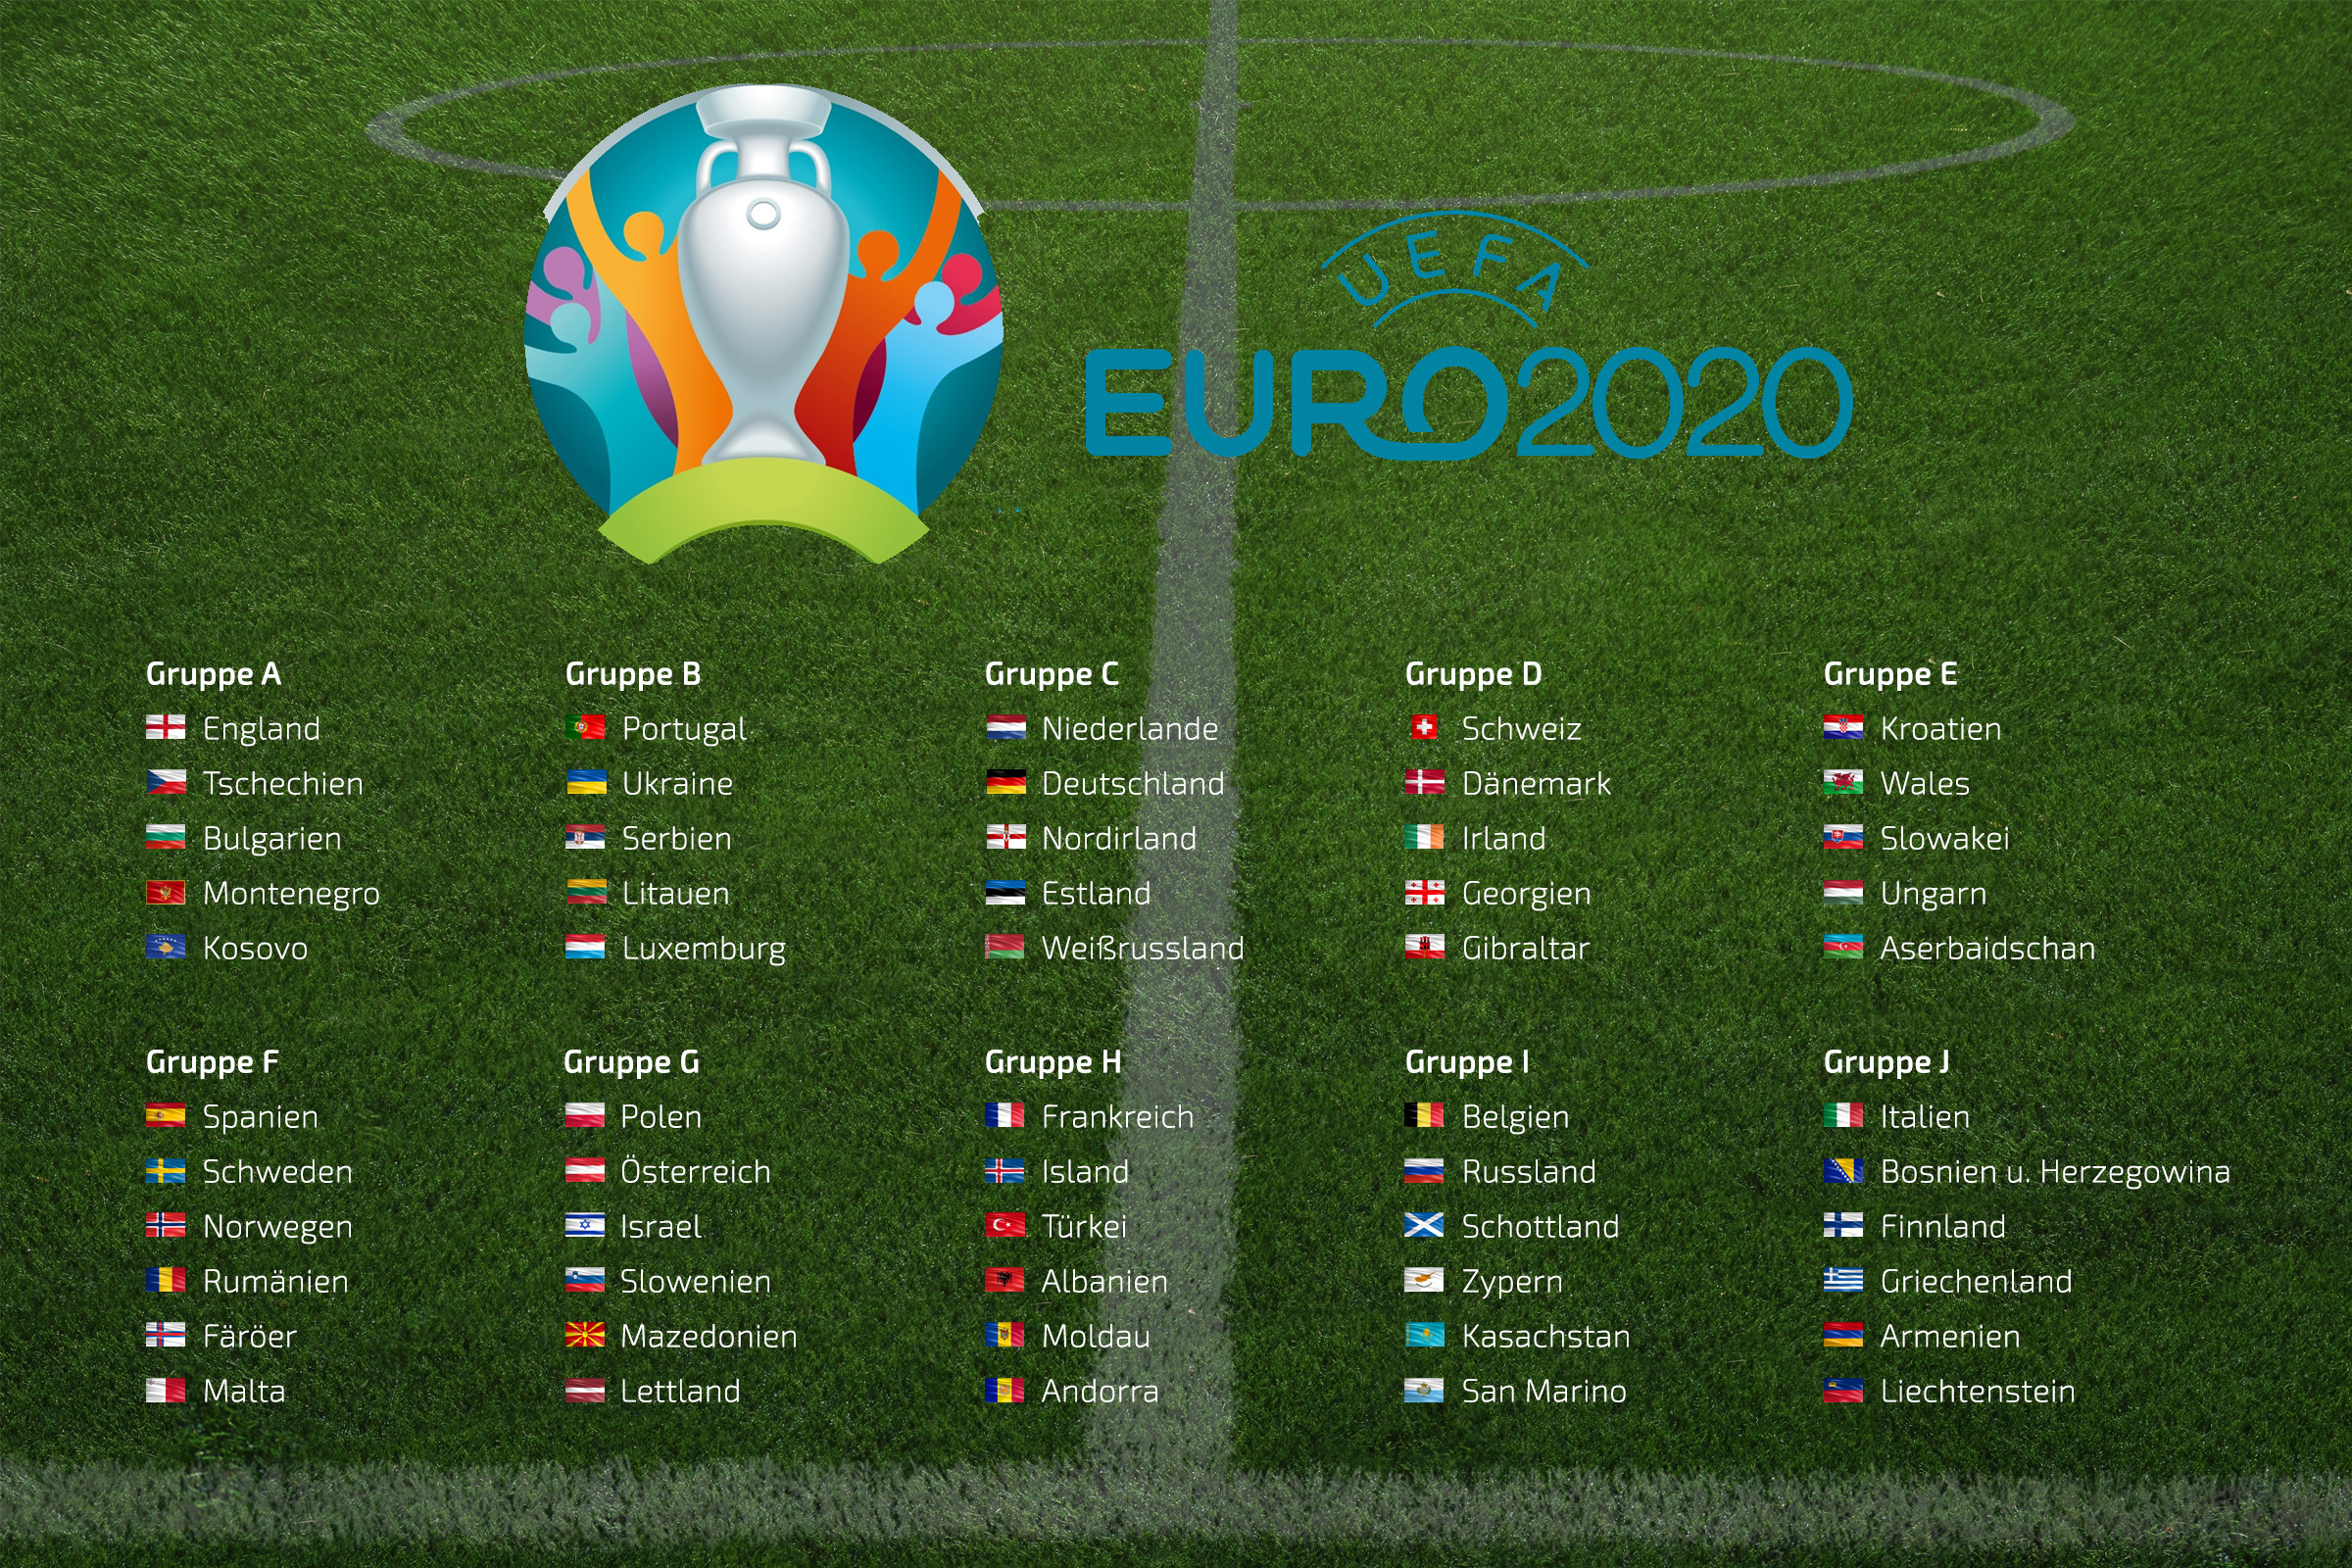 FuГџball Em 2020 Qualifikation